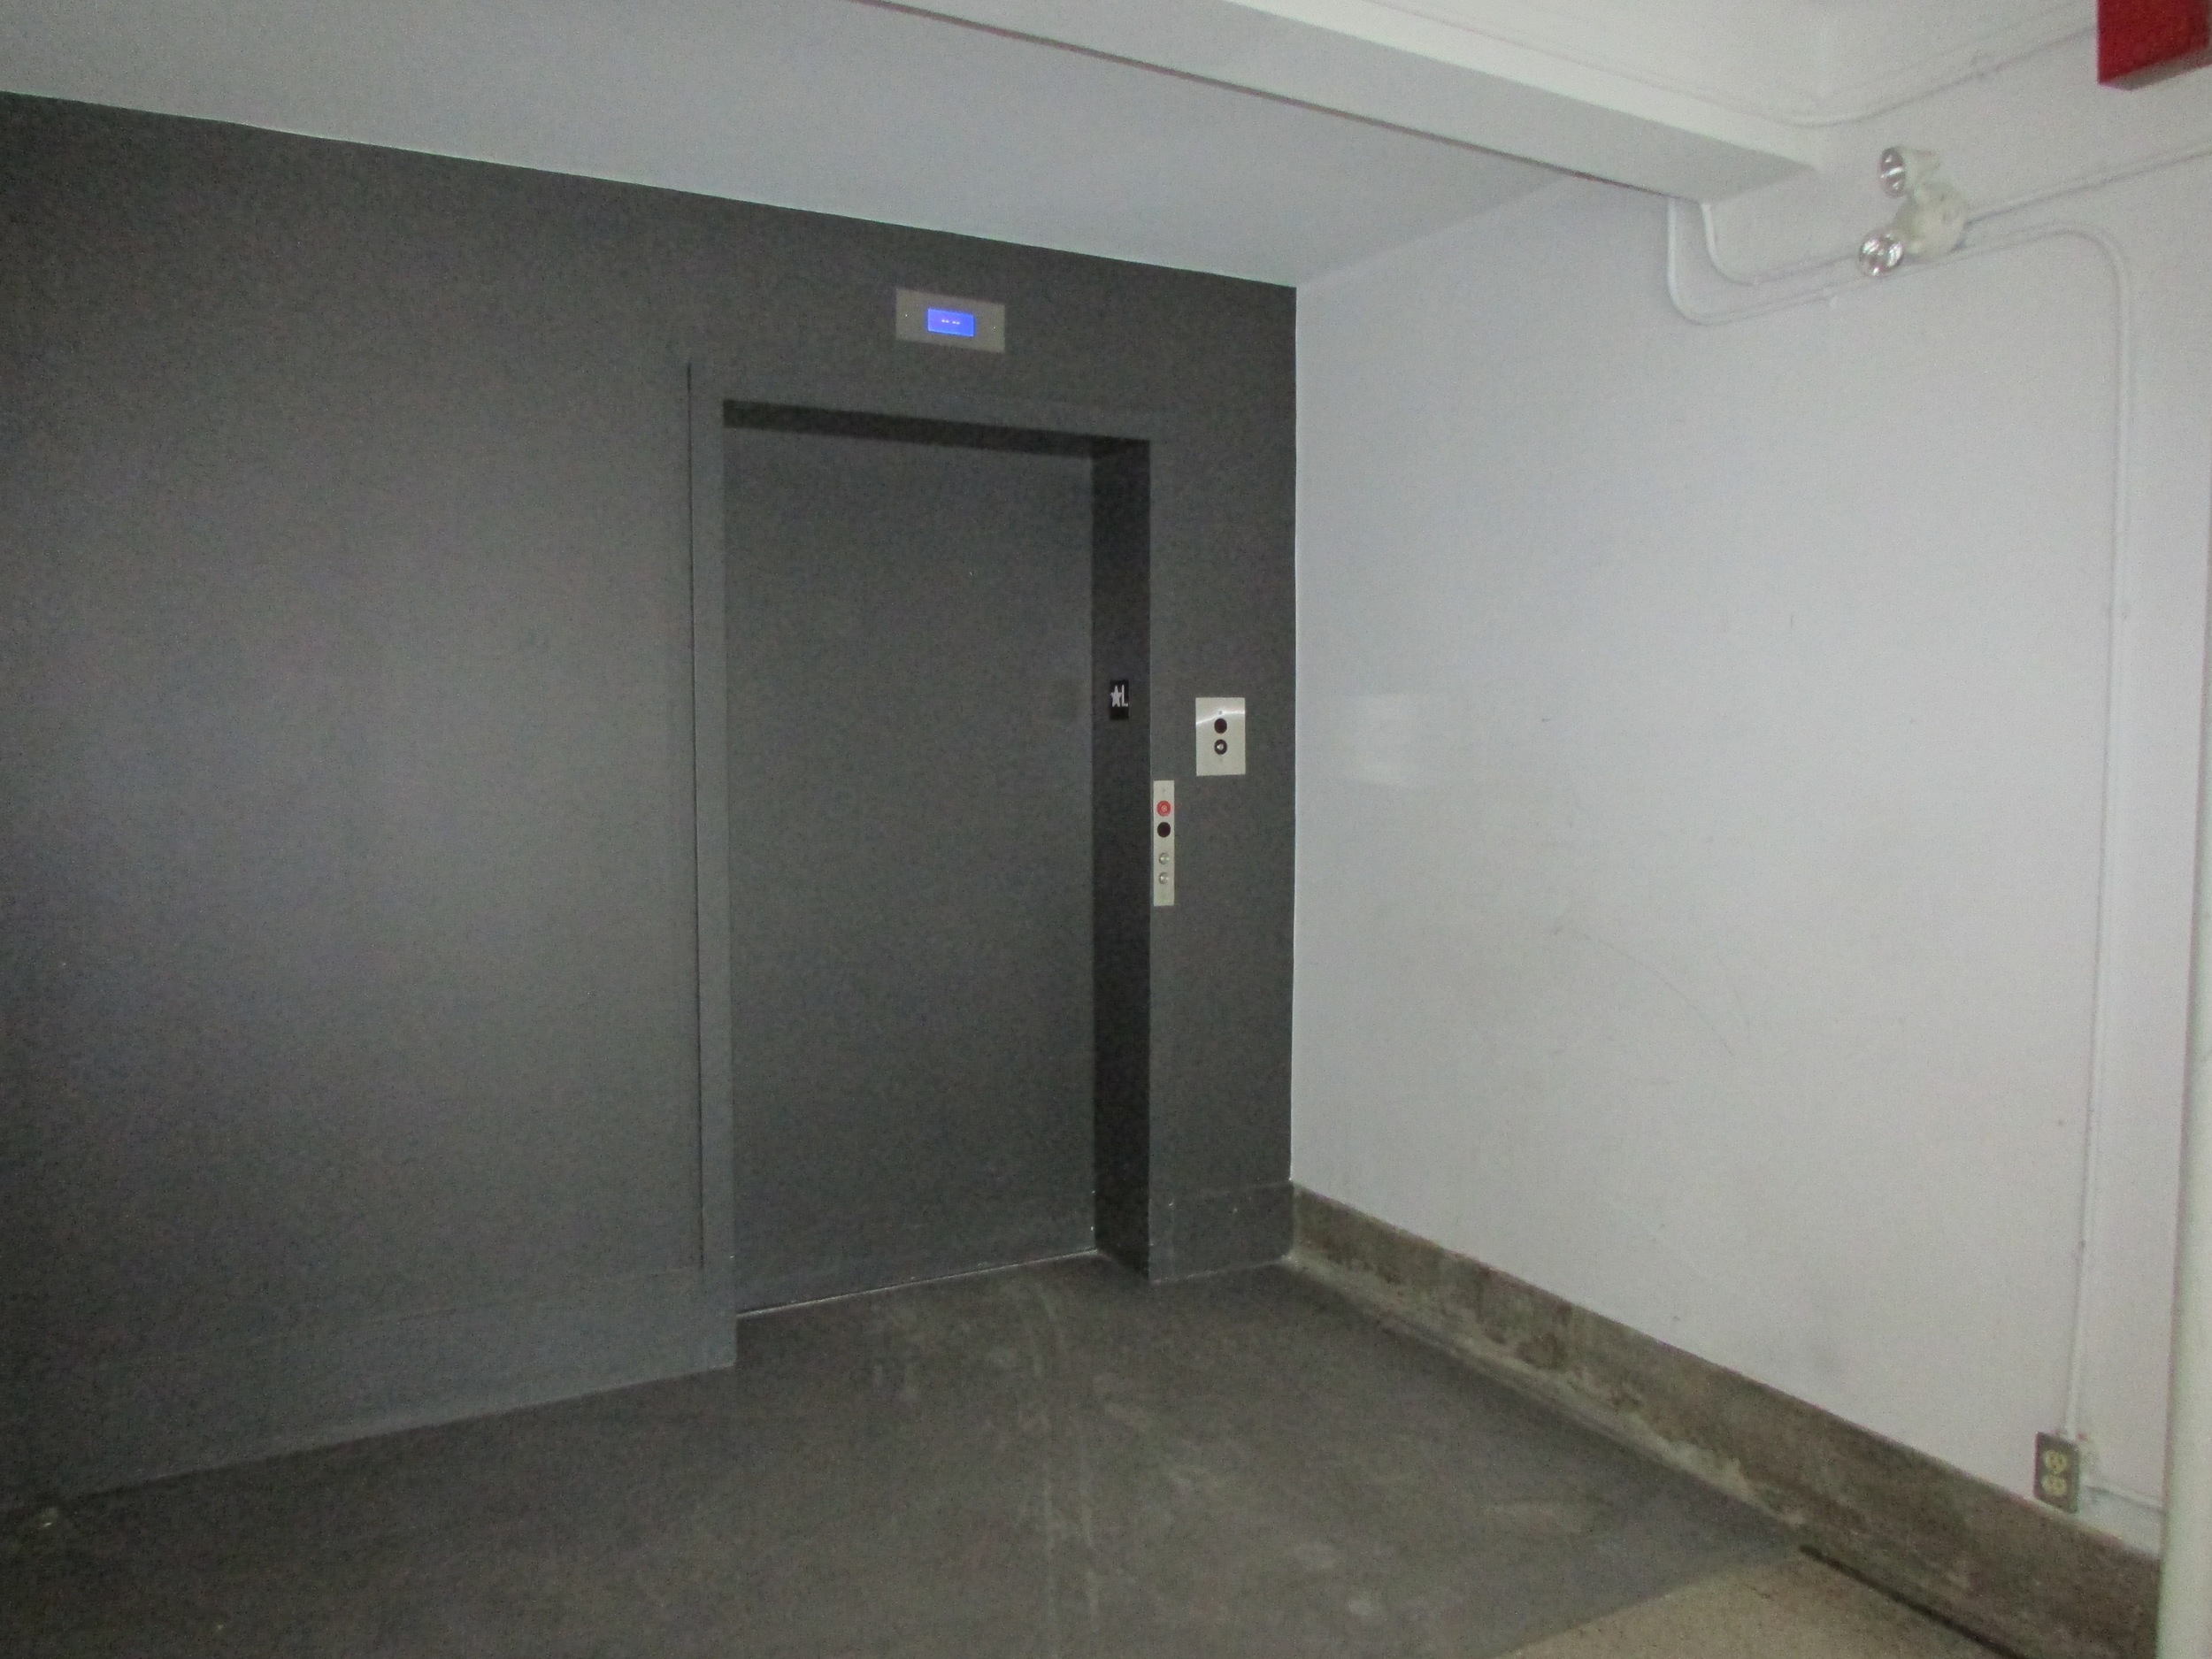 Picture of accessible elevator